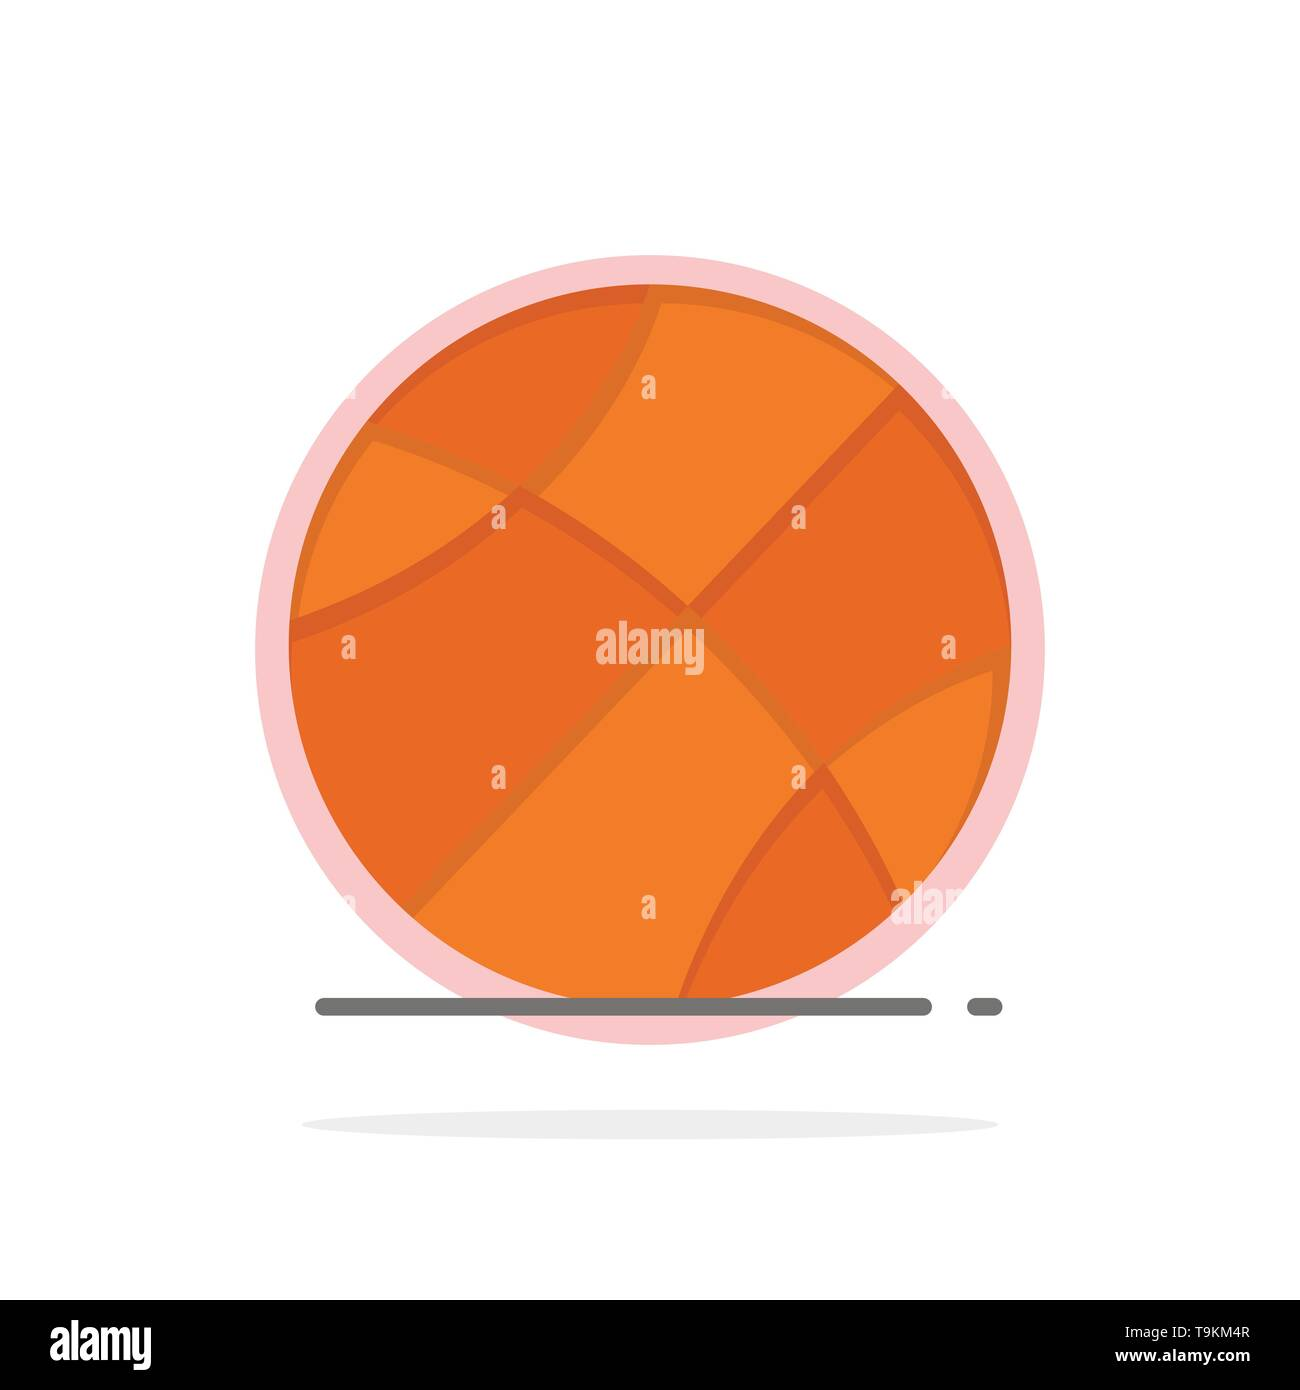 Ball, Sports, Game, Education Abstract Circle Background Flat color Icon - Stock Image